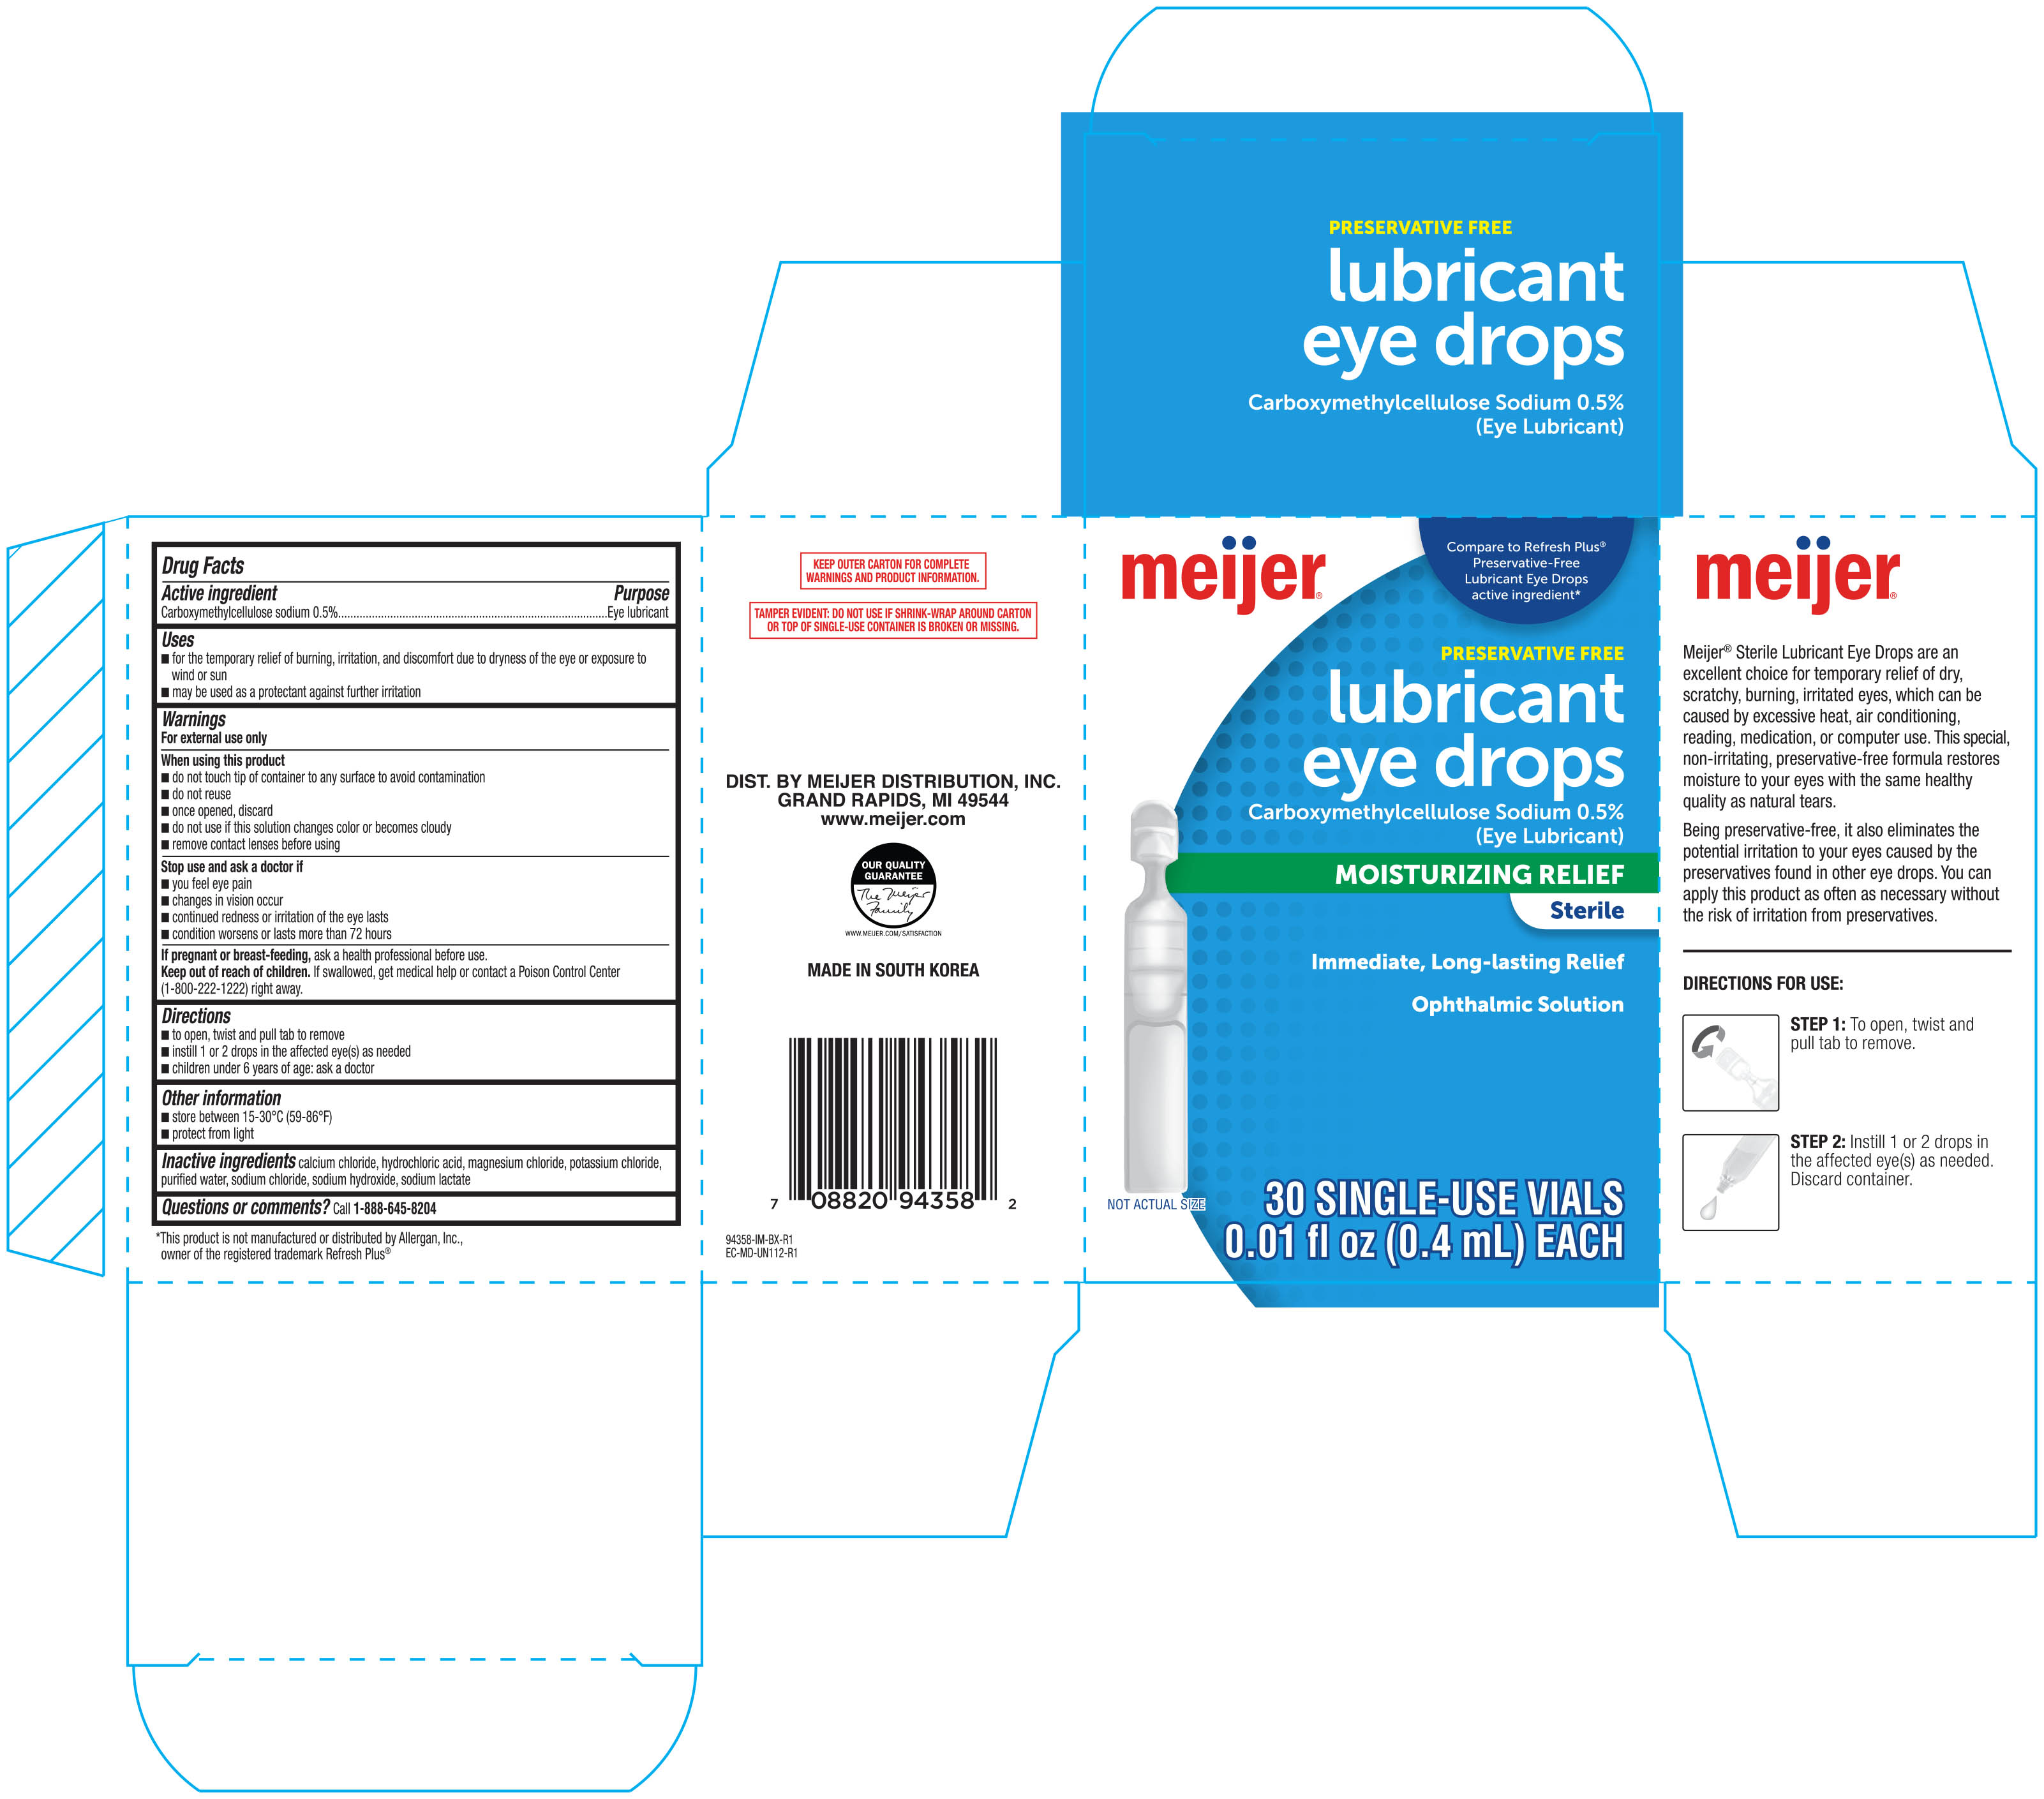 Meijer Lubricant Single Vial (Carboxymethylcellulose Sodium) Solution/ Drops [Meijer, Inc.]